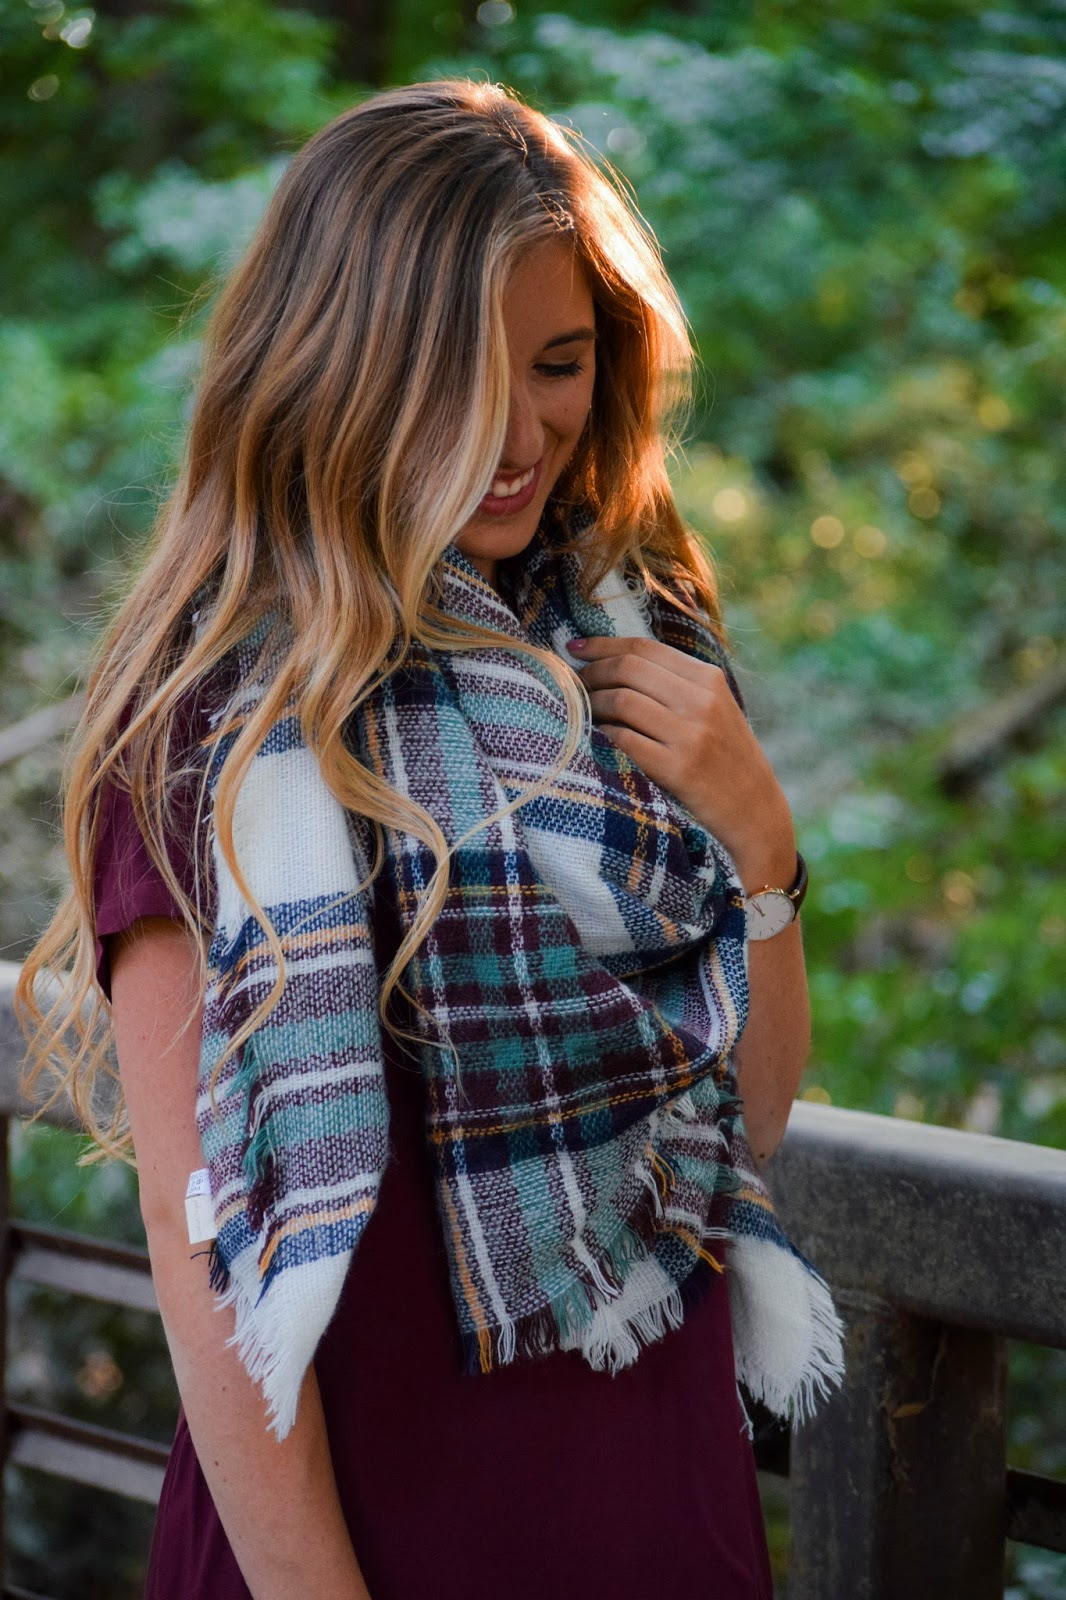 f008ac2fcae40 Fall Outfits - Falling for Autumn